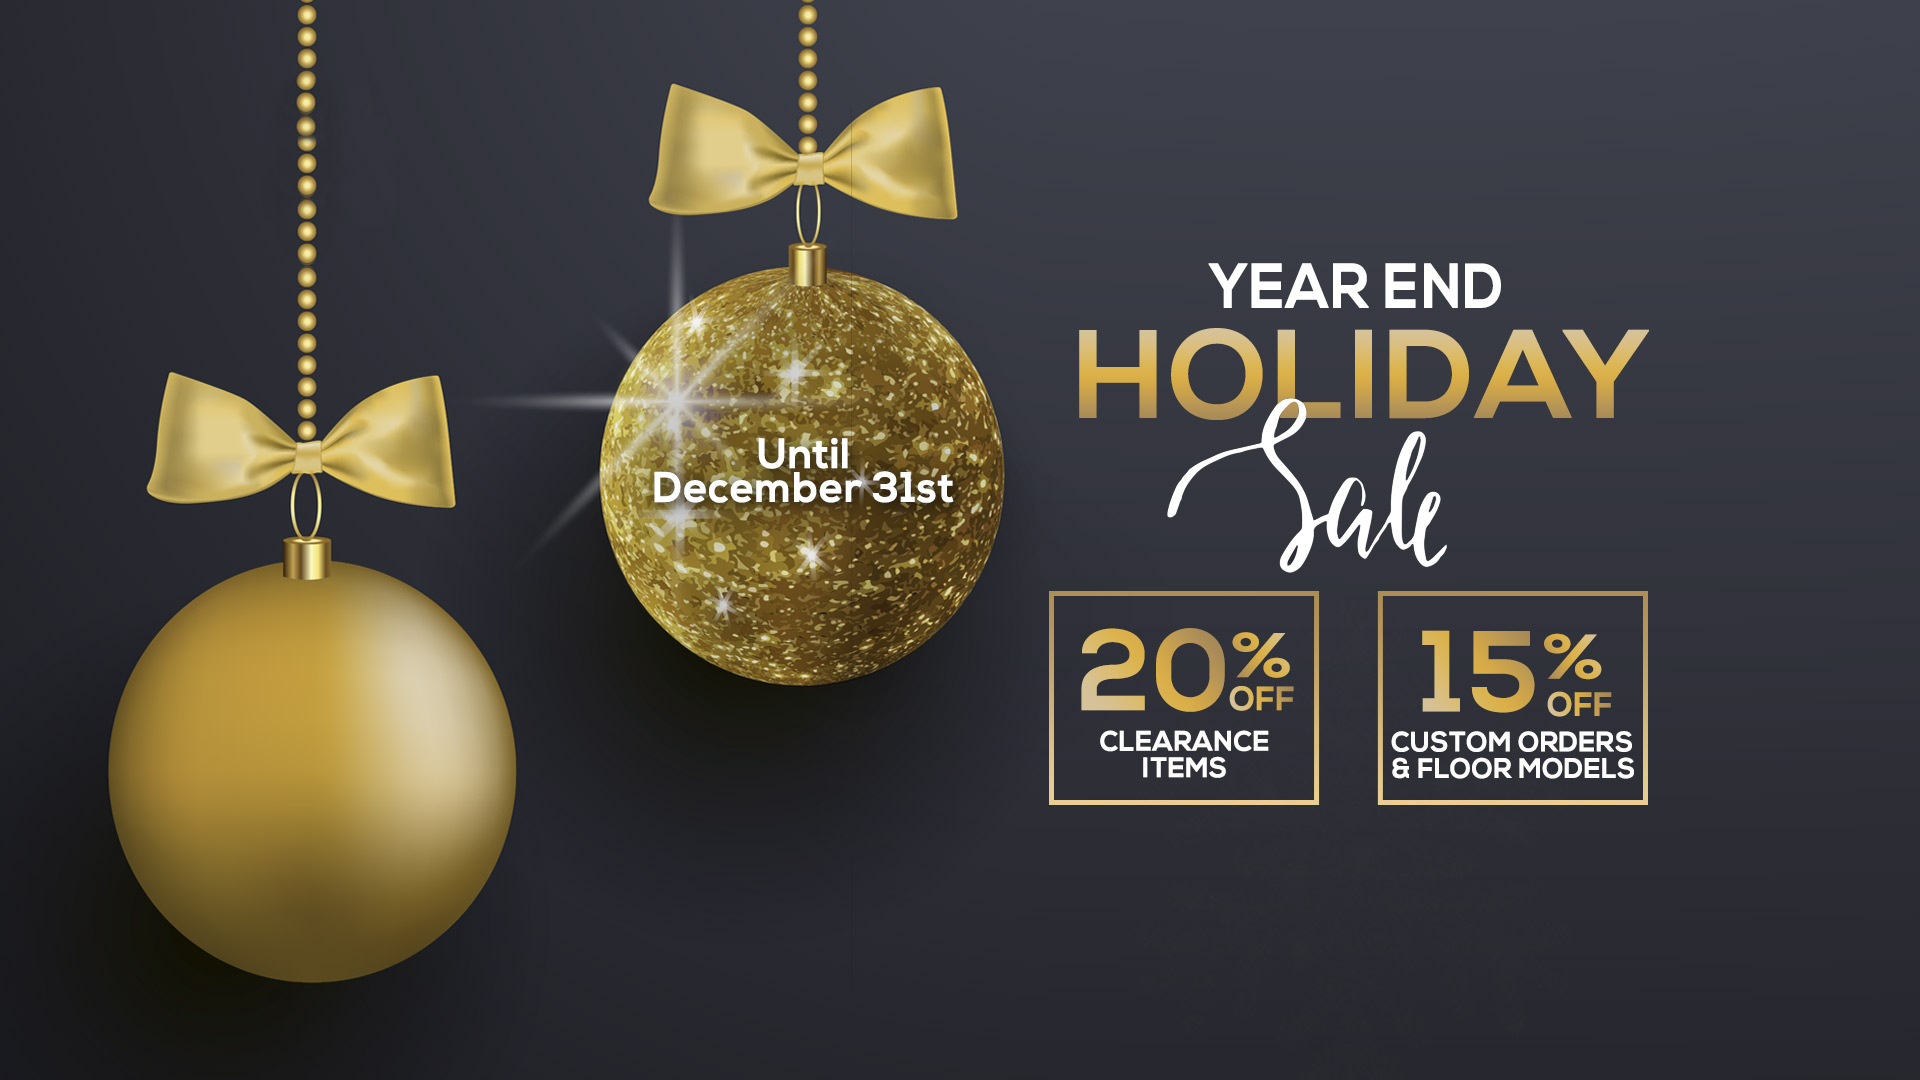 Coulters Holiday Year End Sale 2018 Slider Home